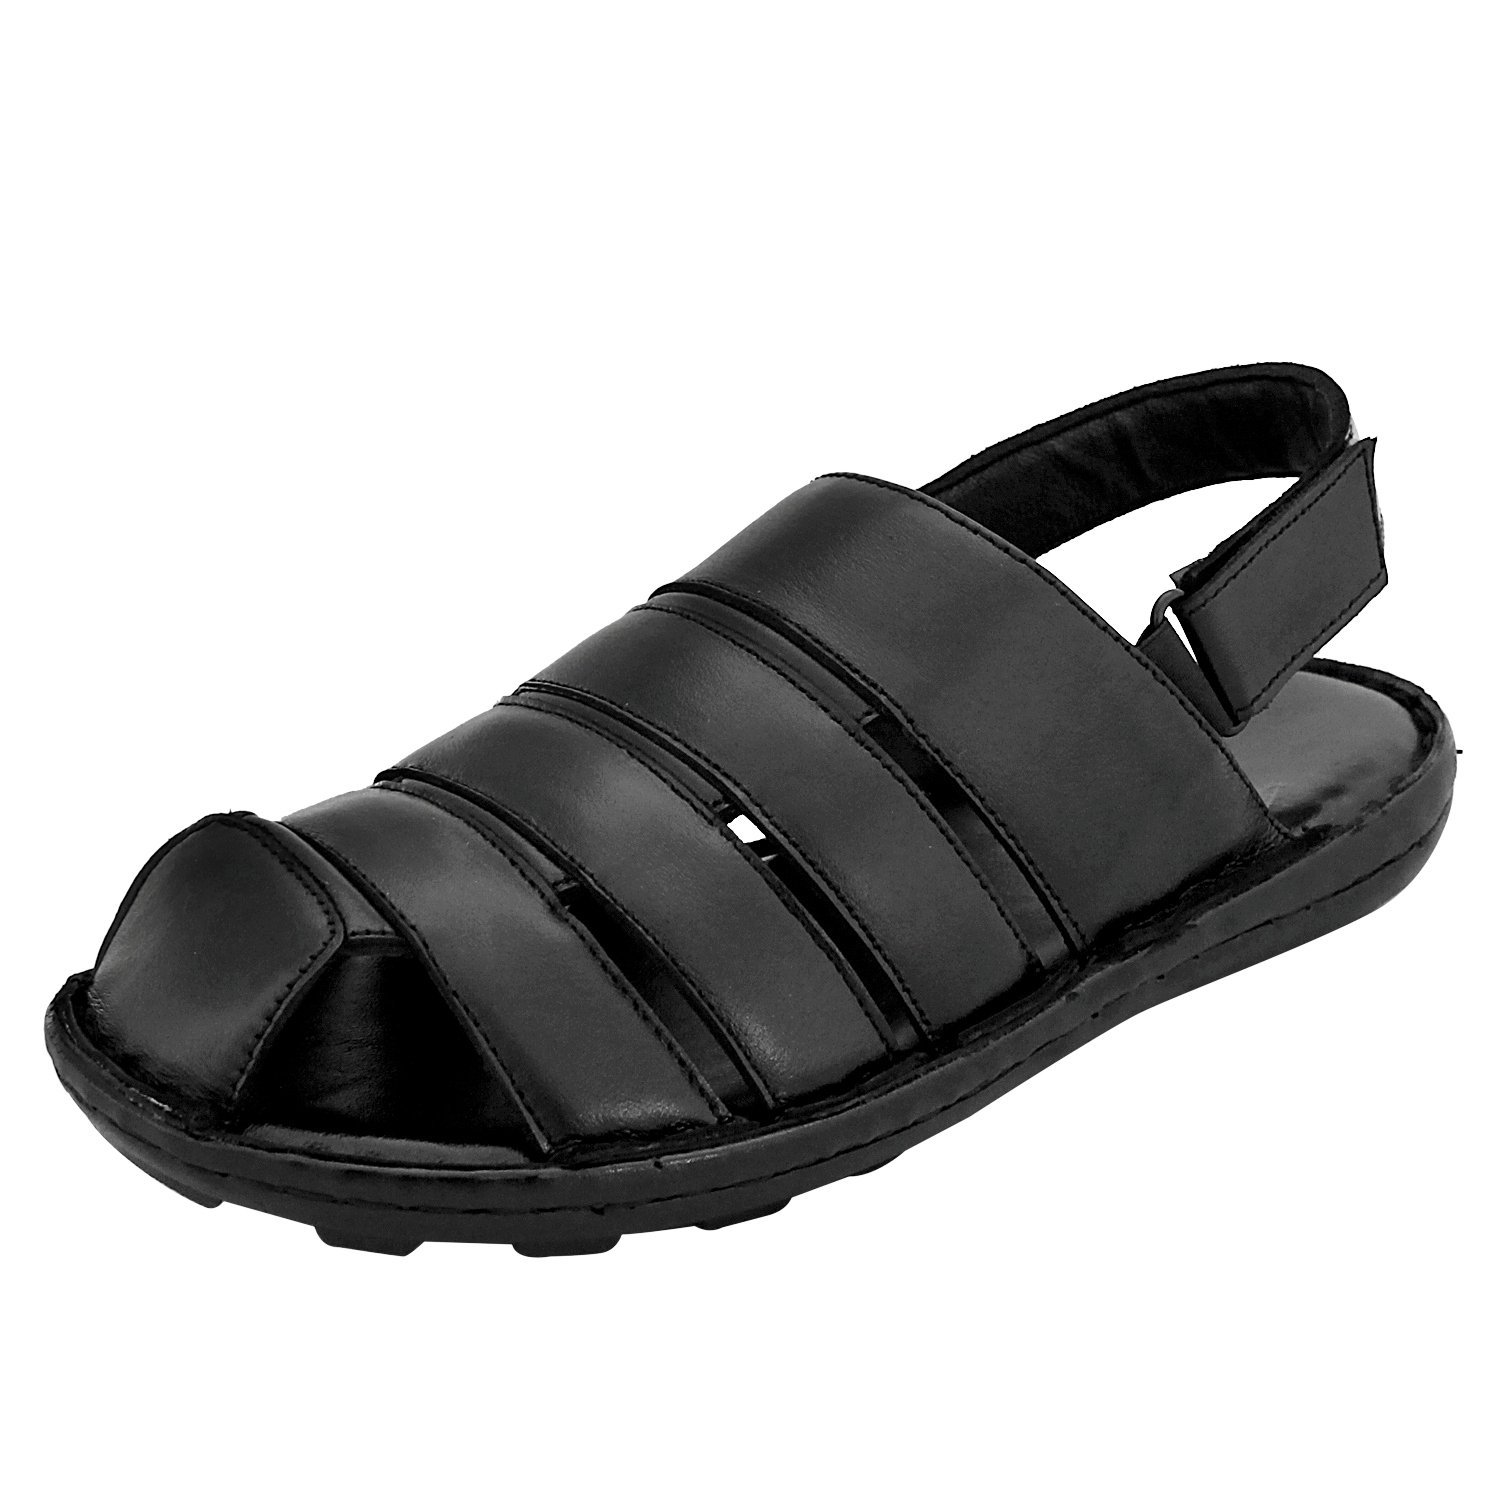 ee4144285 Feather Leather Black Men Sandals  Buy Online at Low Prices in India -  Amazon.in